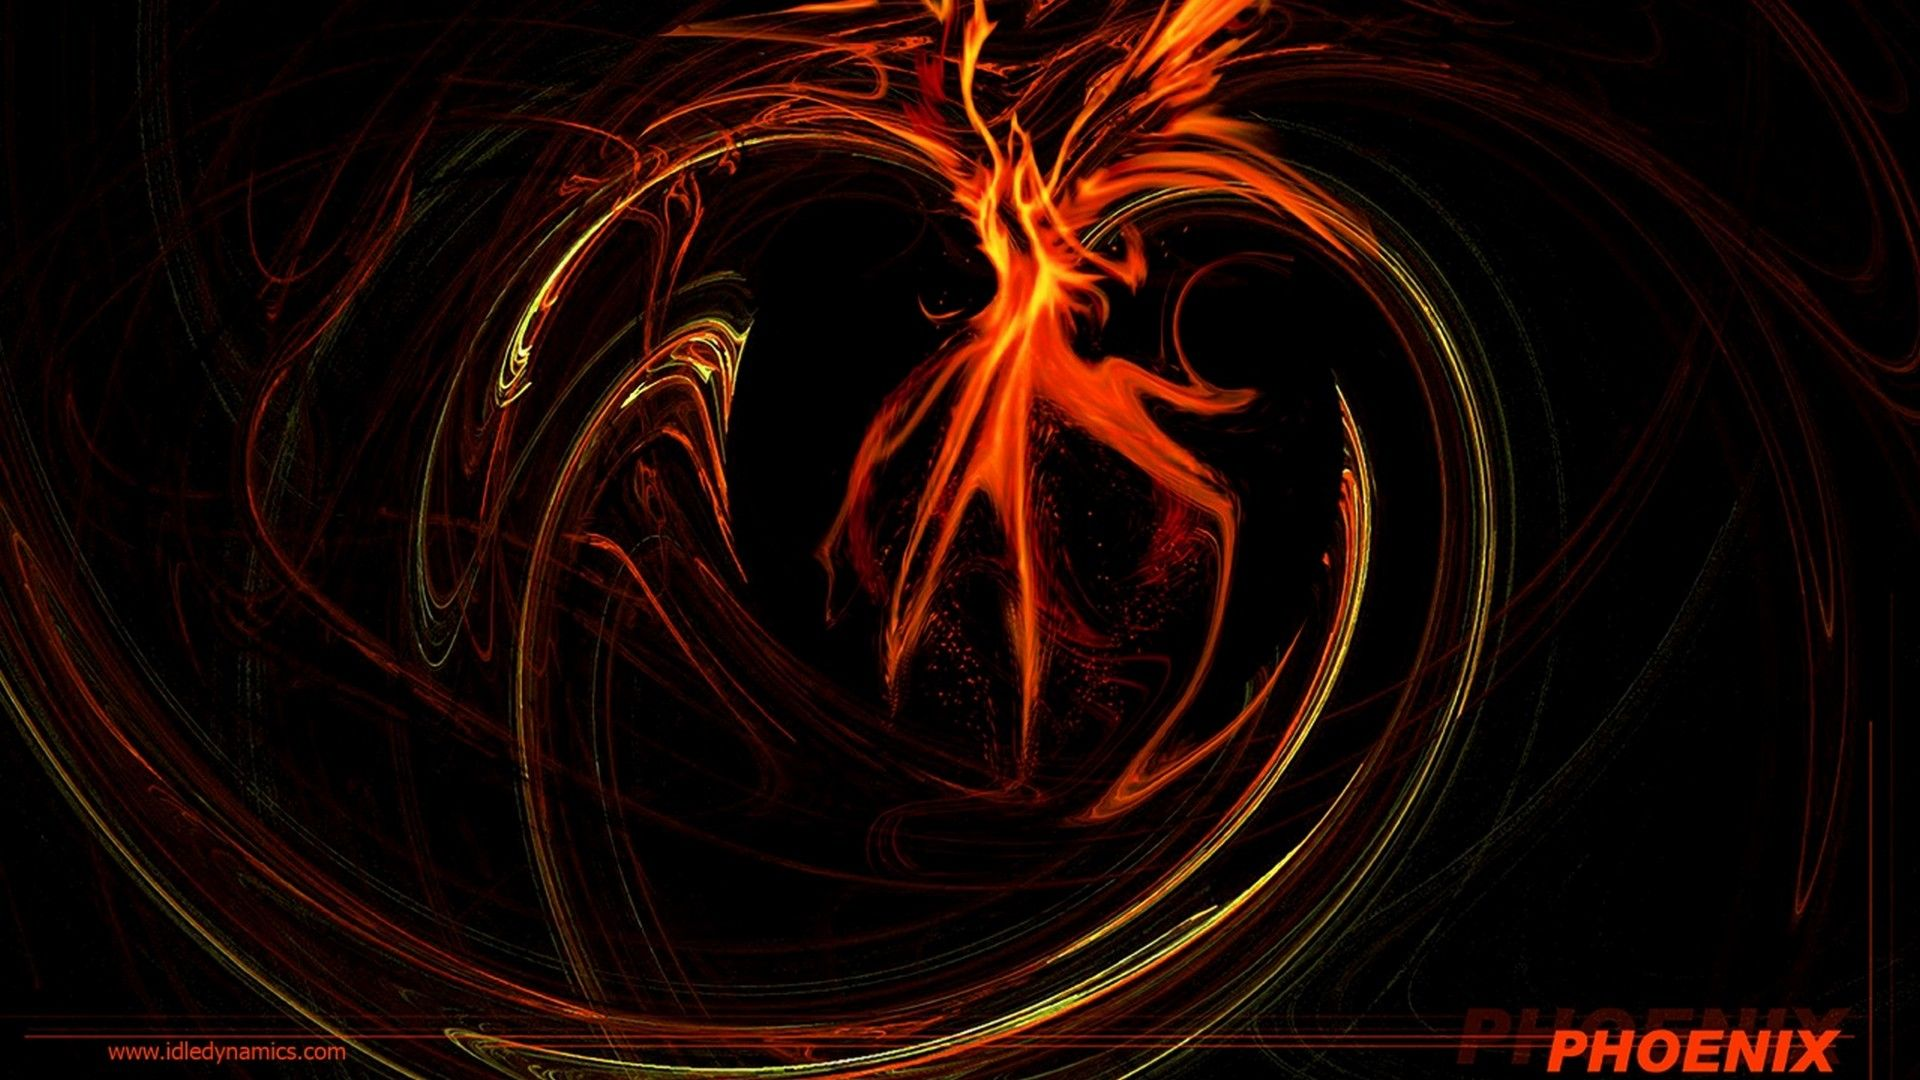 HD Phoenix Wallpapers - Top Free HD Phoenix Backgrounds